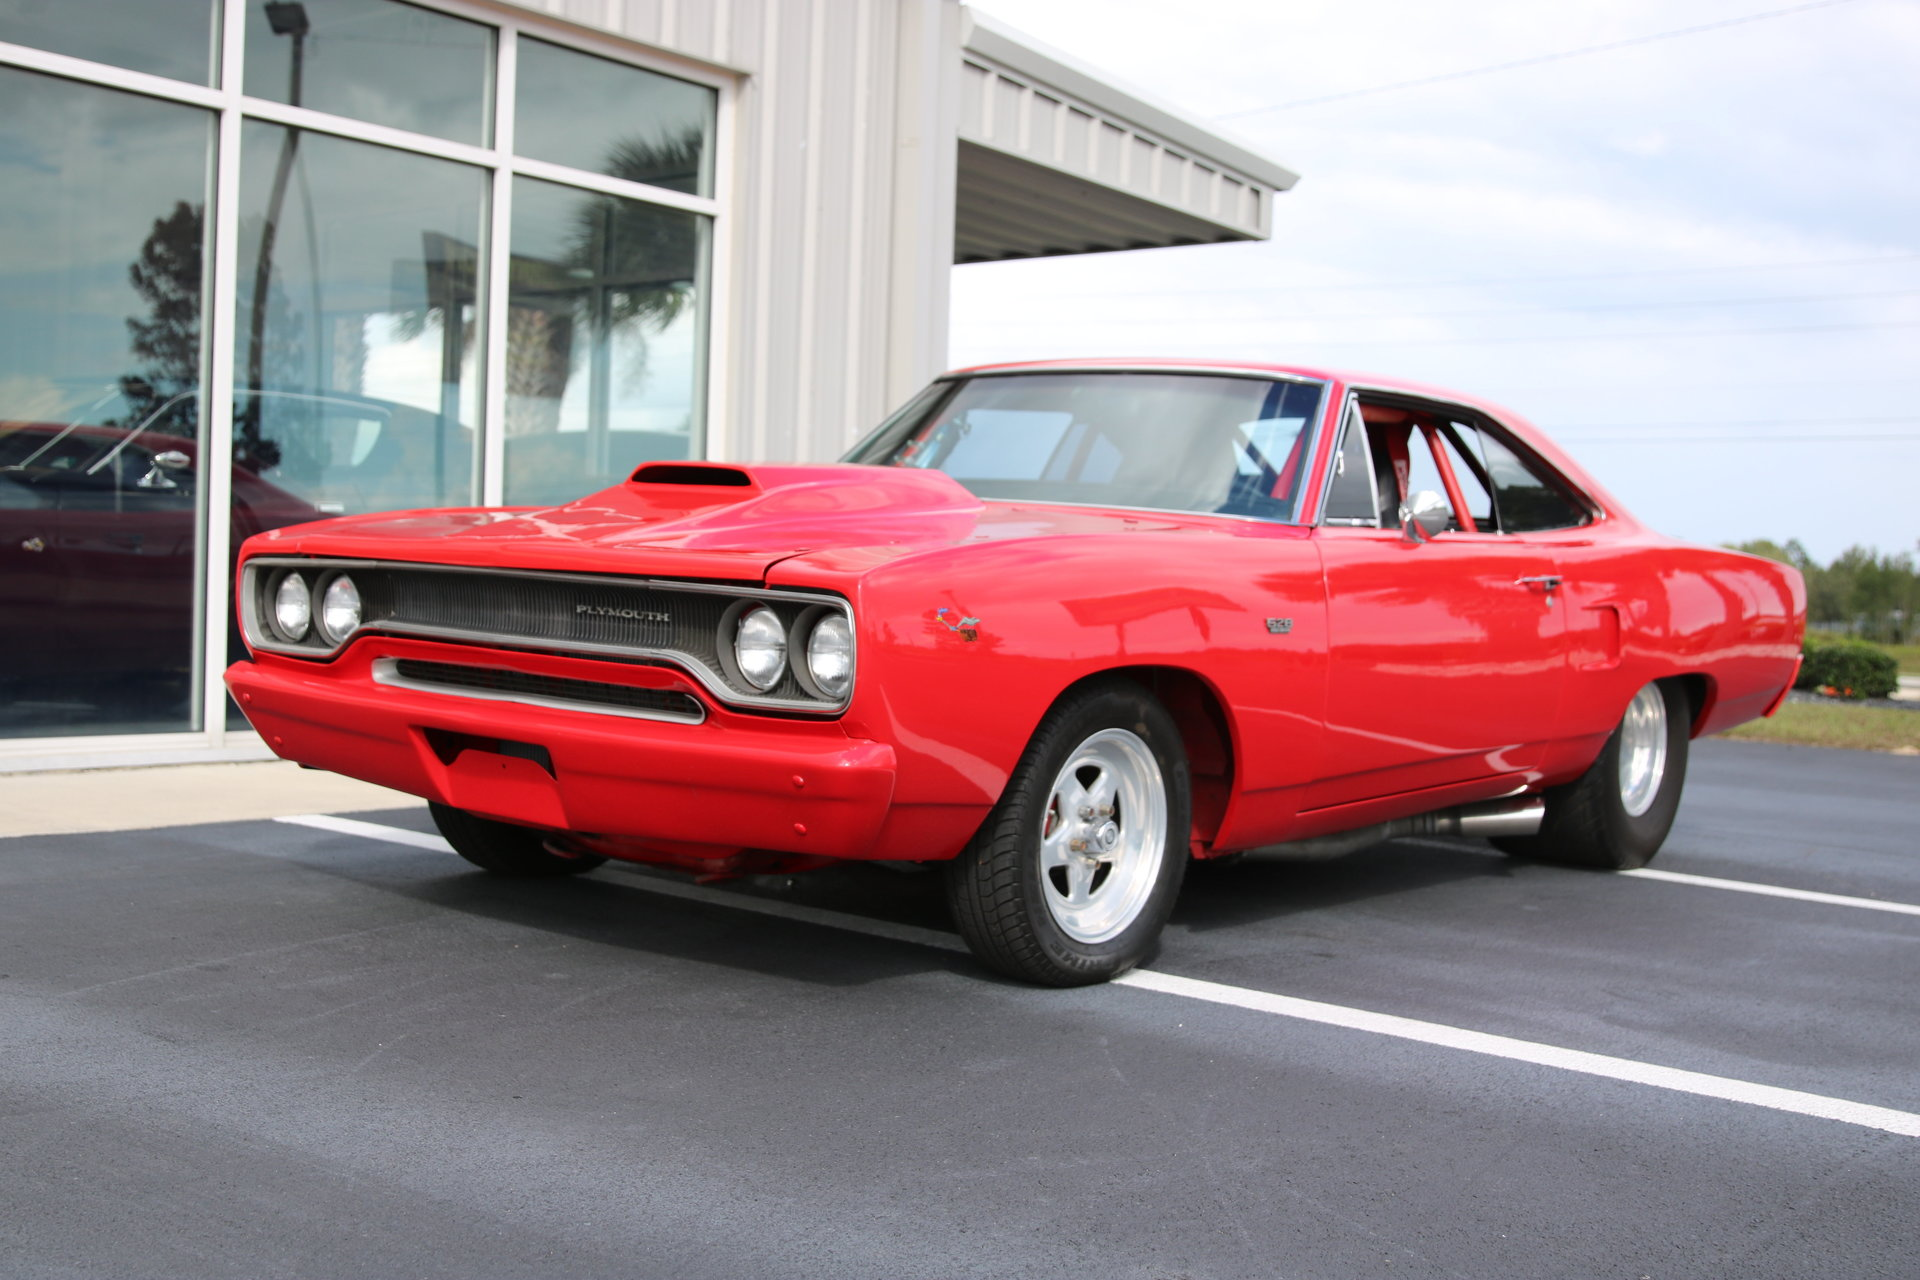 1970 plymouth road runner burnyzz american classic horse. Black Bedroom Furniture Sets. Home Design Ideas